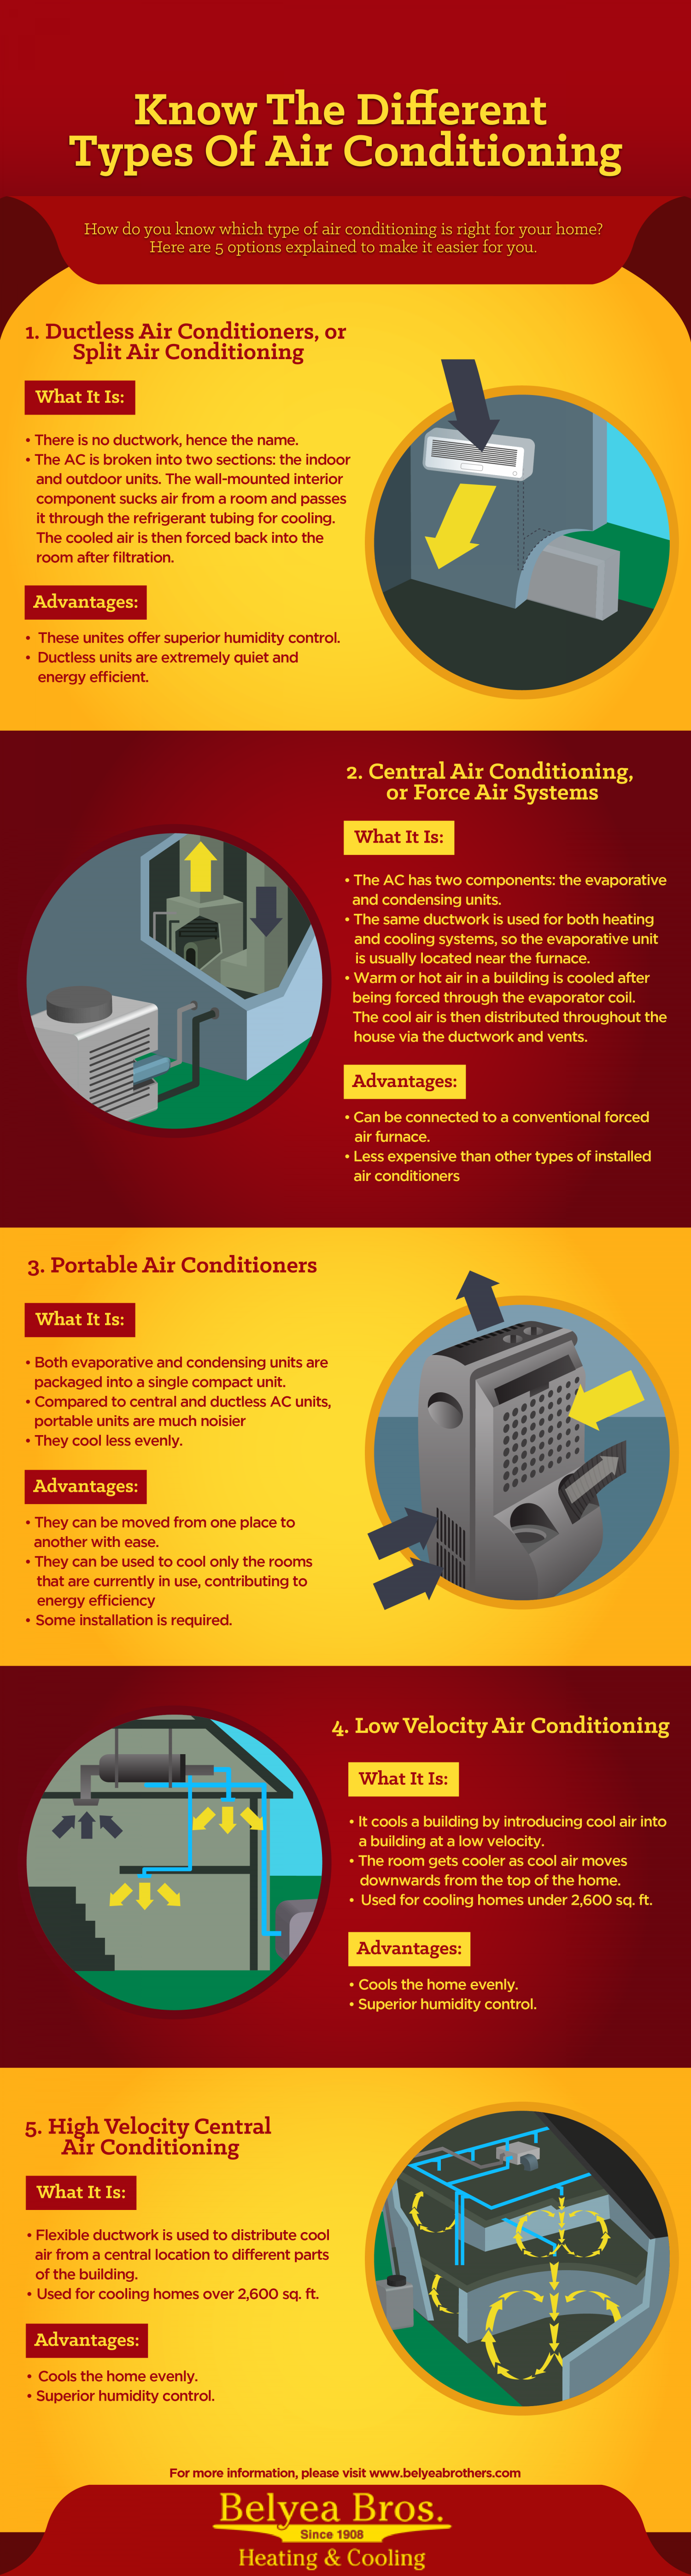 Know the Different Types of Air Conditioning Infographic